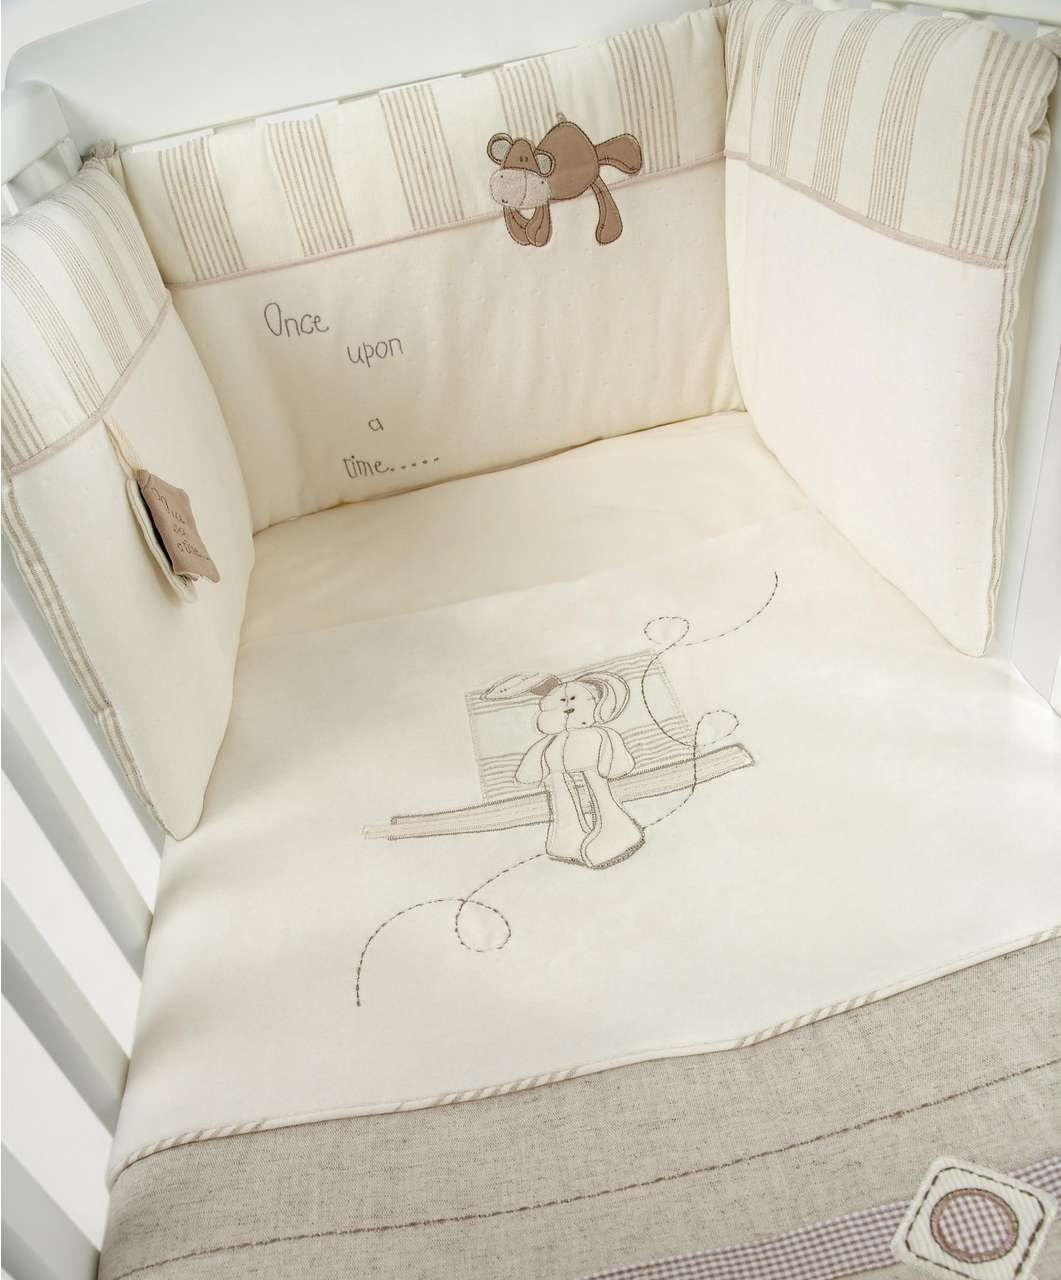 Once Upon a Time - 2 Piece Crib Set - Once Upon A Time Unisex ...